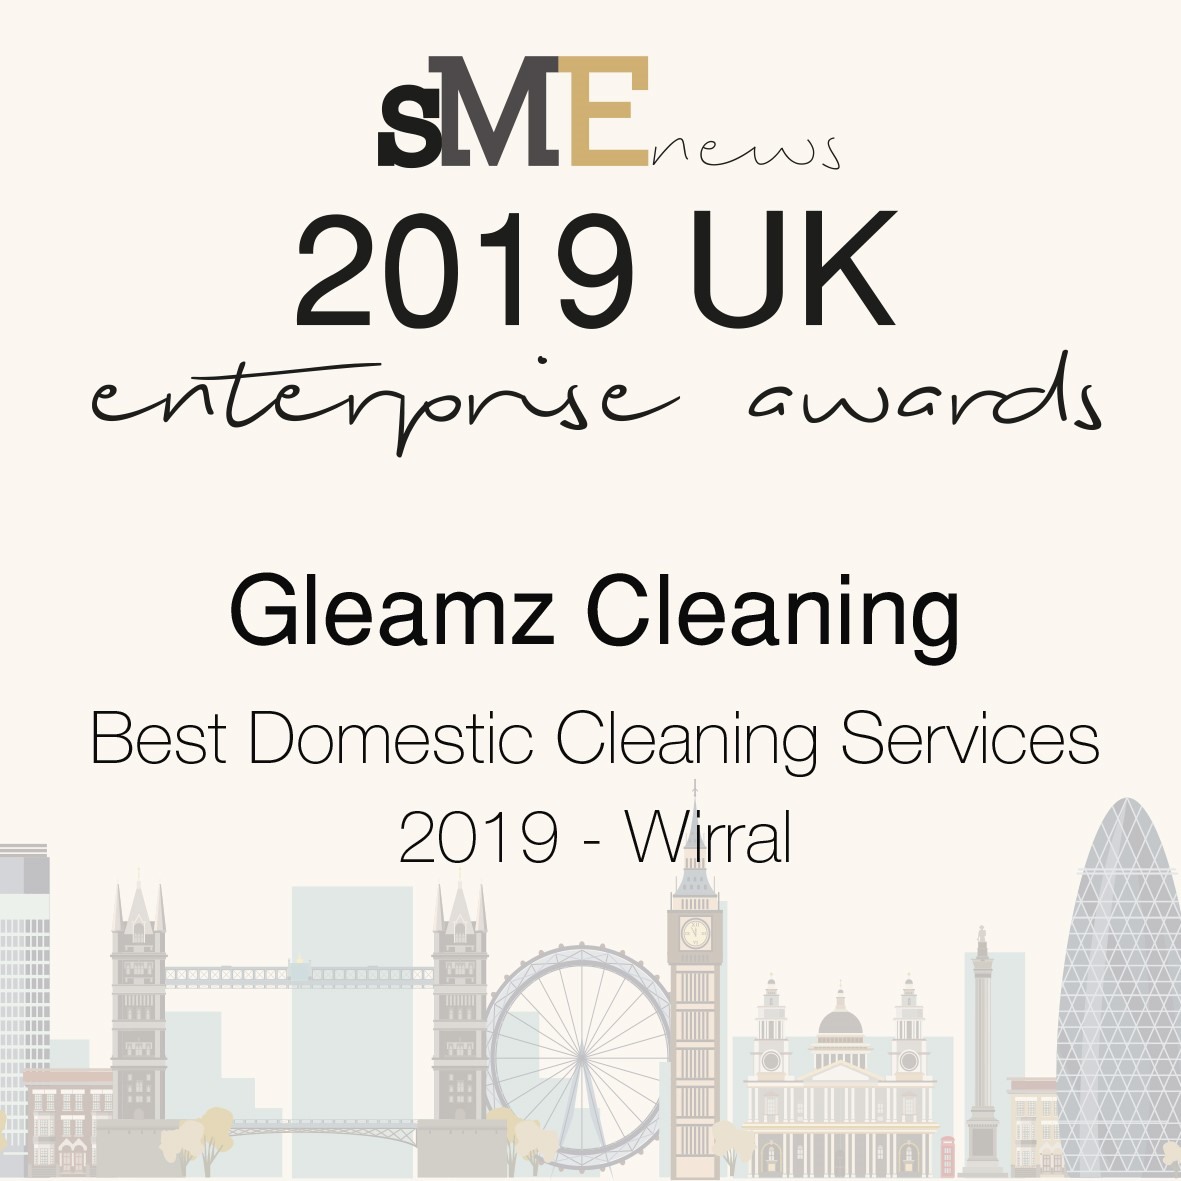 Gleamz Cleaning, Best Domestic Cleaning Services 2019, Wirral